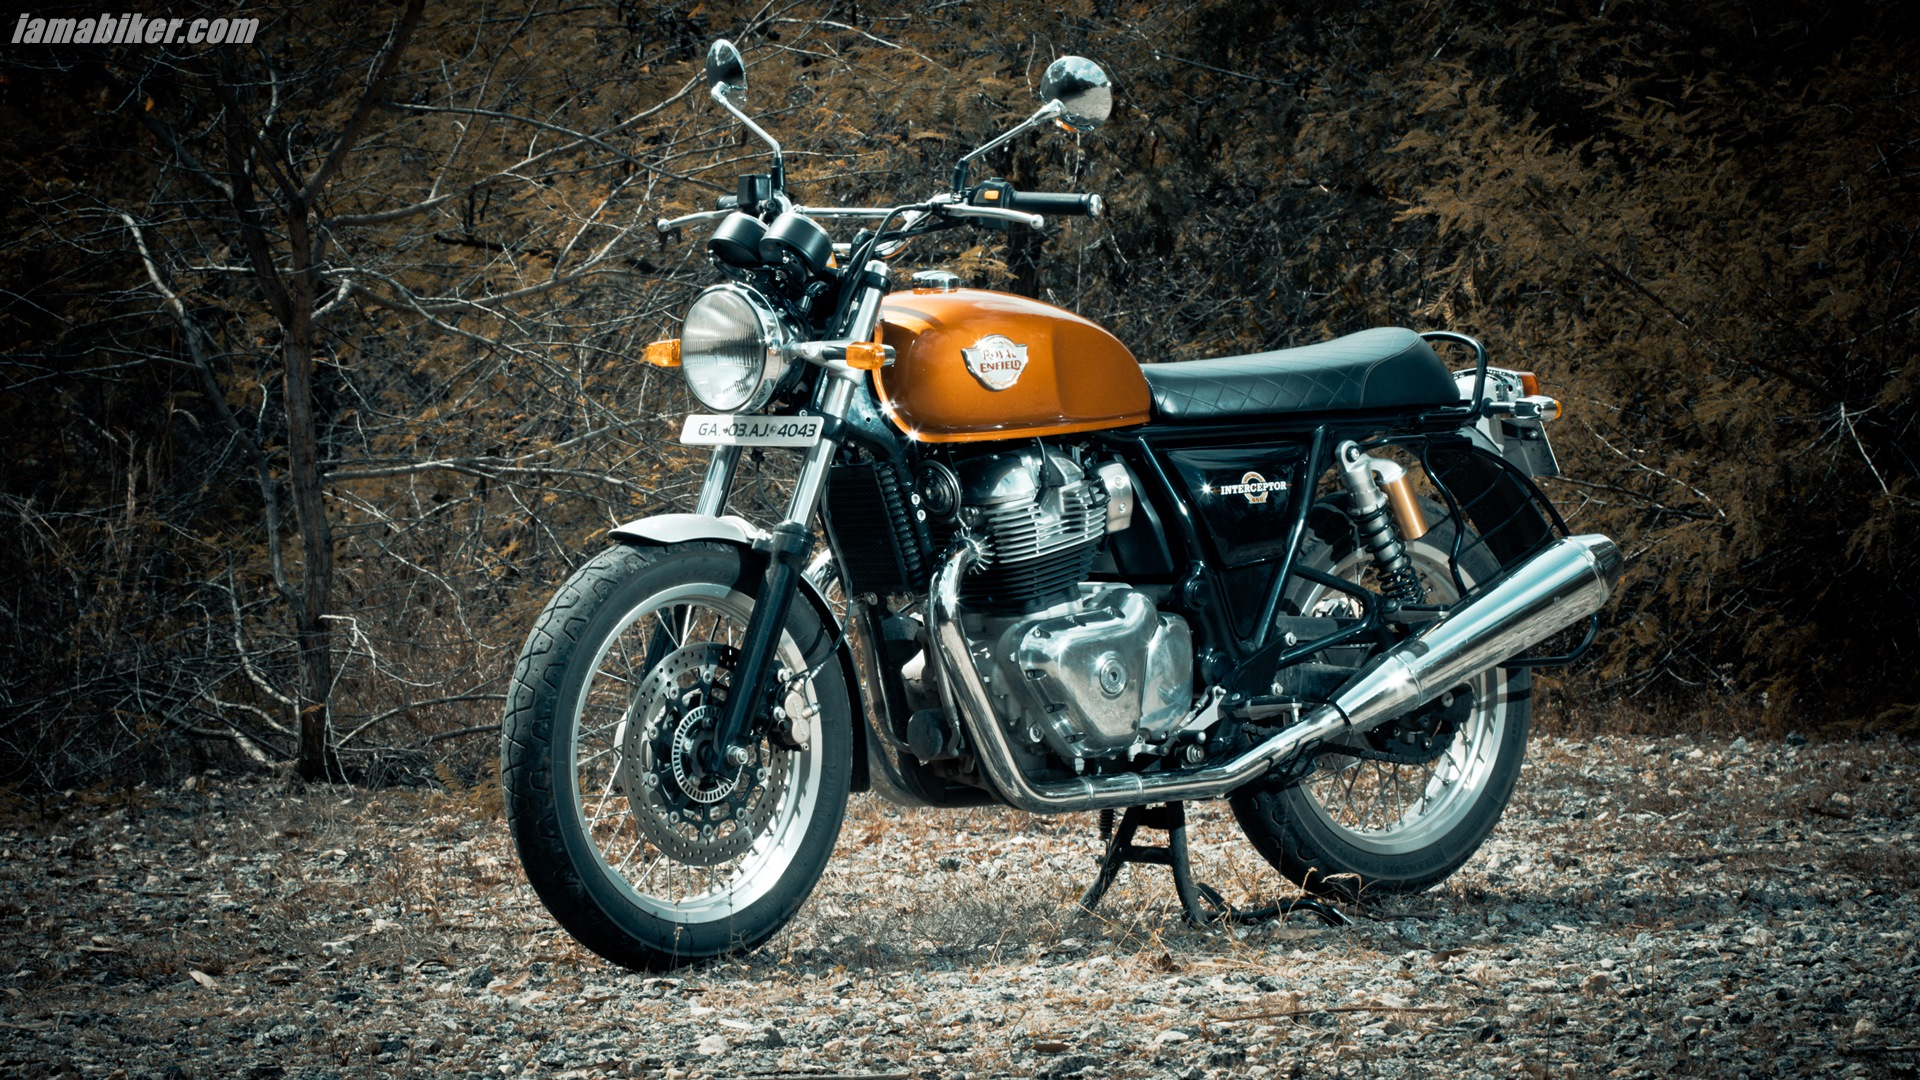 Interceptor 650 Hd Wallpapers Royal Enfield Iamabiker